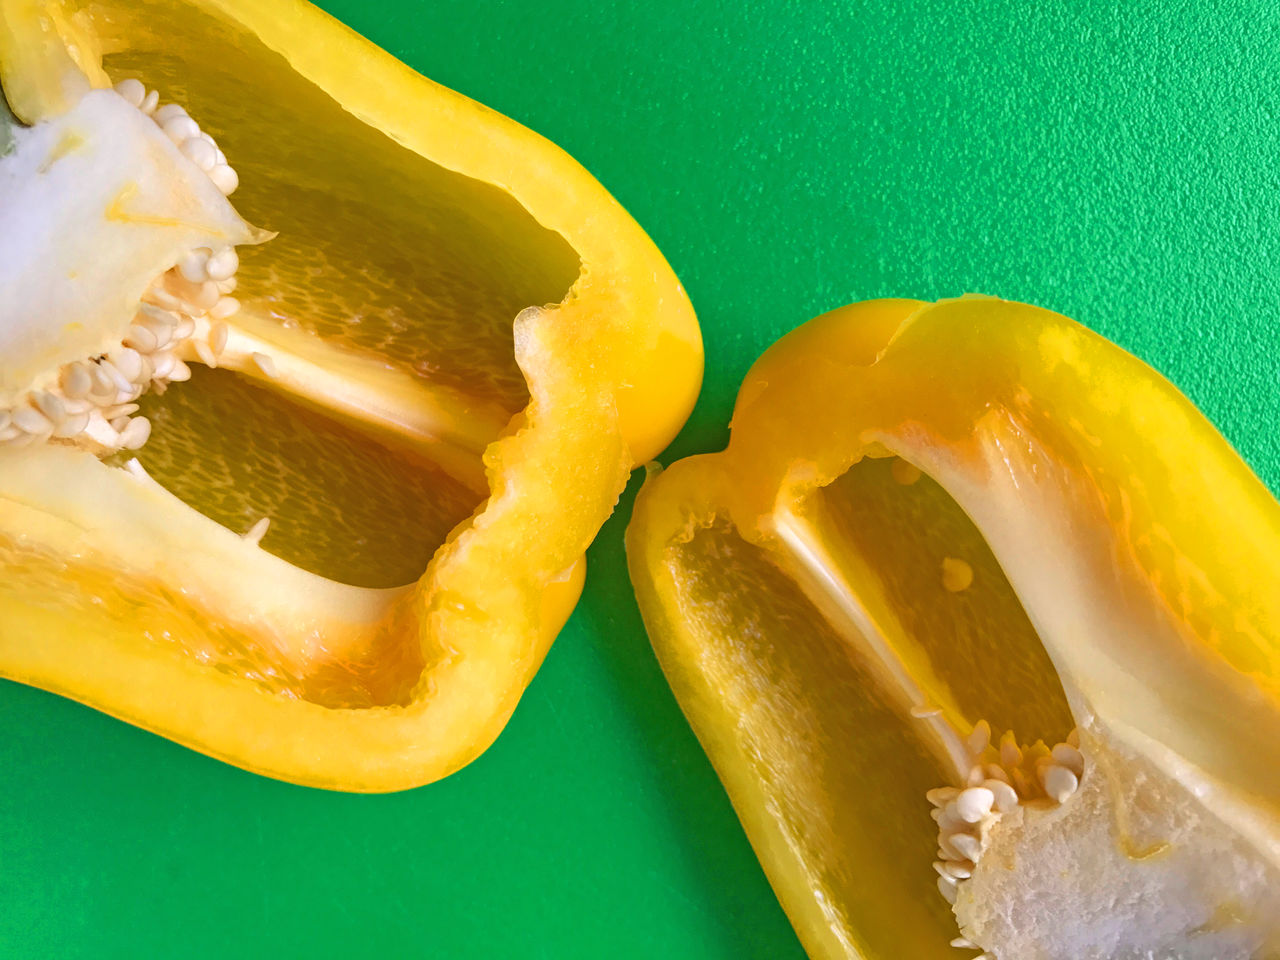 Yellow bell pepper on green Bell Pepper Close-up Contrast Copy Space Food Ingredient Food Preparation Fresh Green Color Healthy Eating Indoors  Natural Light No People Overhead Phone Camera Produce Saturated Colors Seeds Textures Vegan Yellow